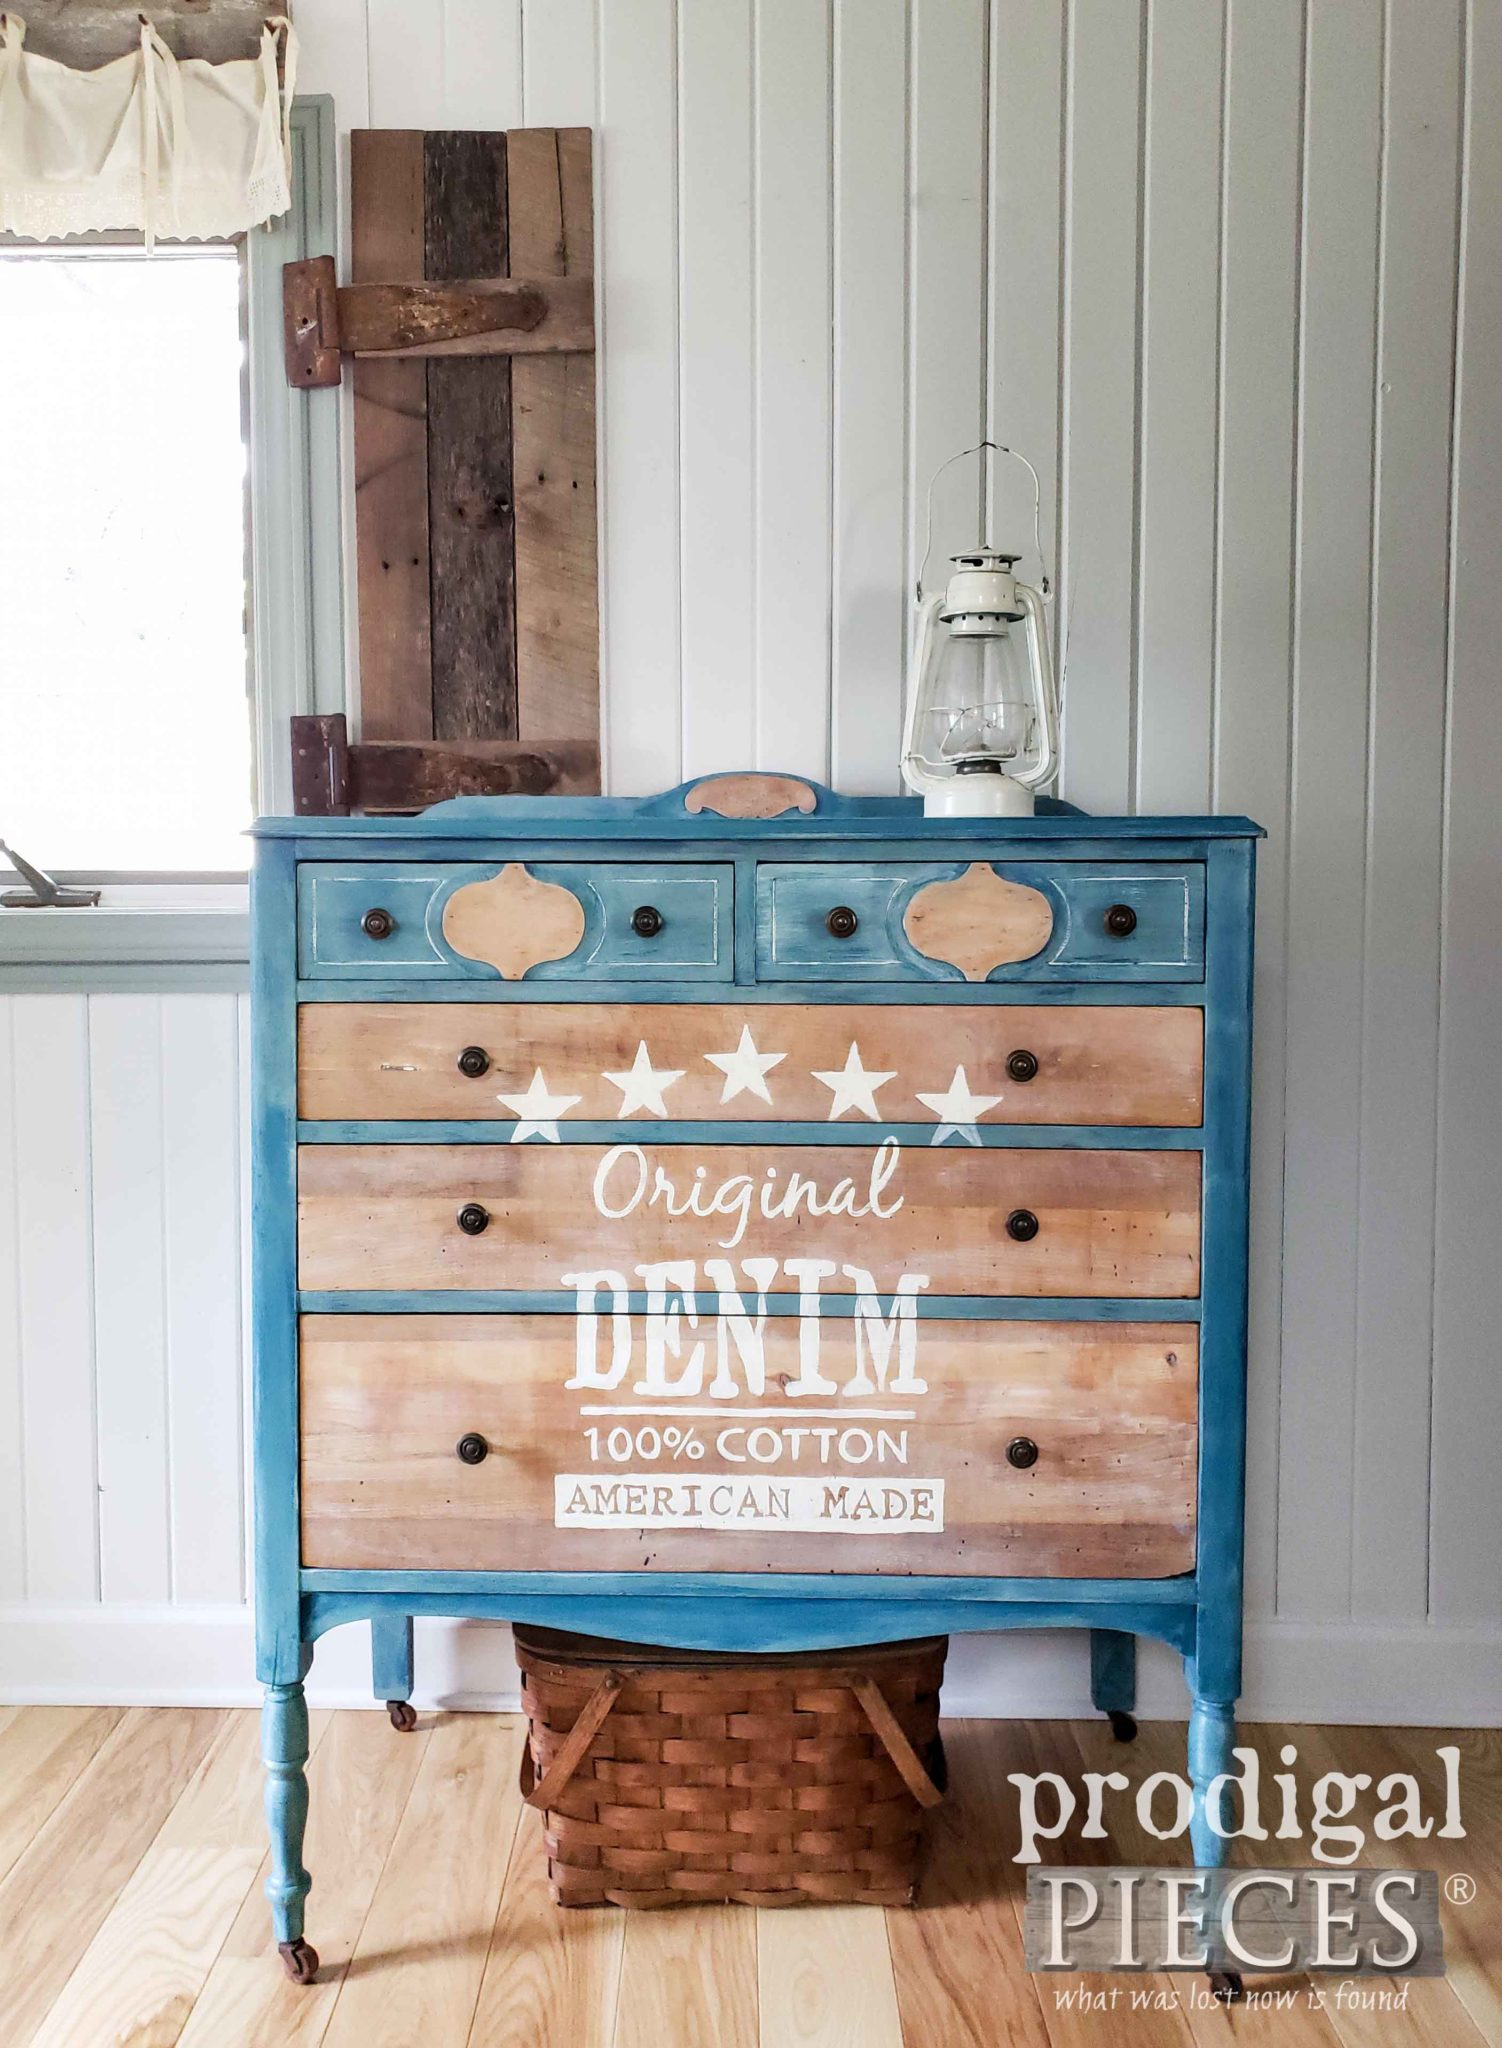 Farmhouse Chest of Drawers with Faded Denim Paint Effect and Typography Created by Larissa of Prodigal Pieces | prodigalpieces.com #prodigalpieces #diy #furniture #art #home #farmhouse #homedecor #denim